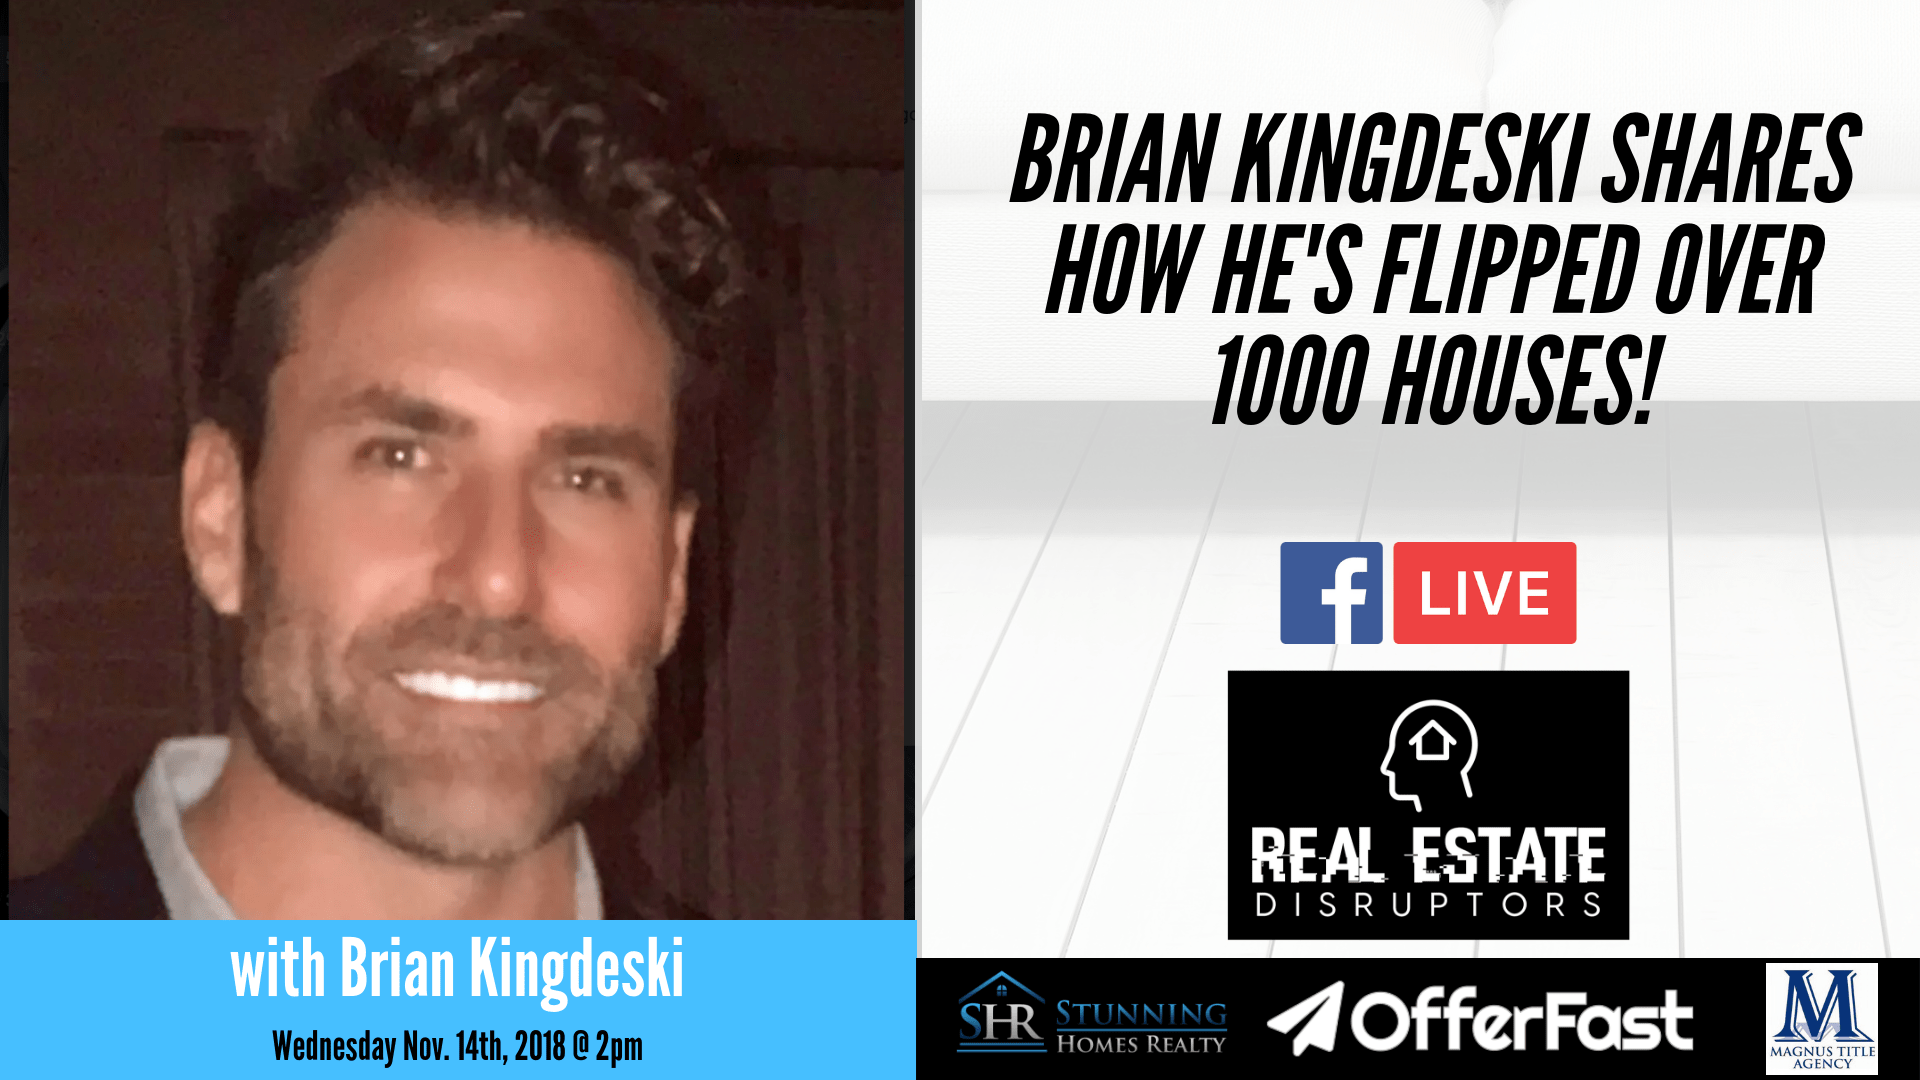 Interview with Brian Kingdeski